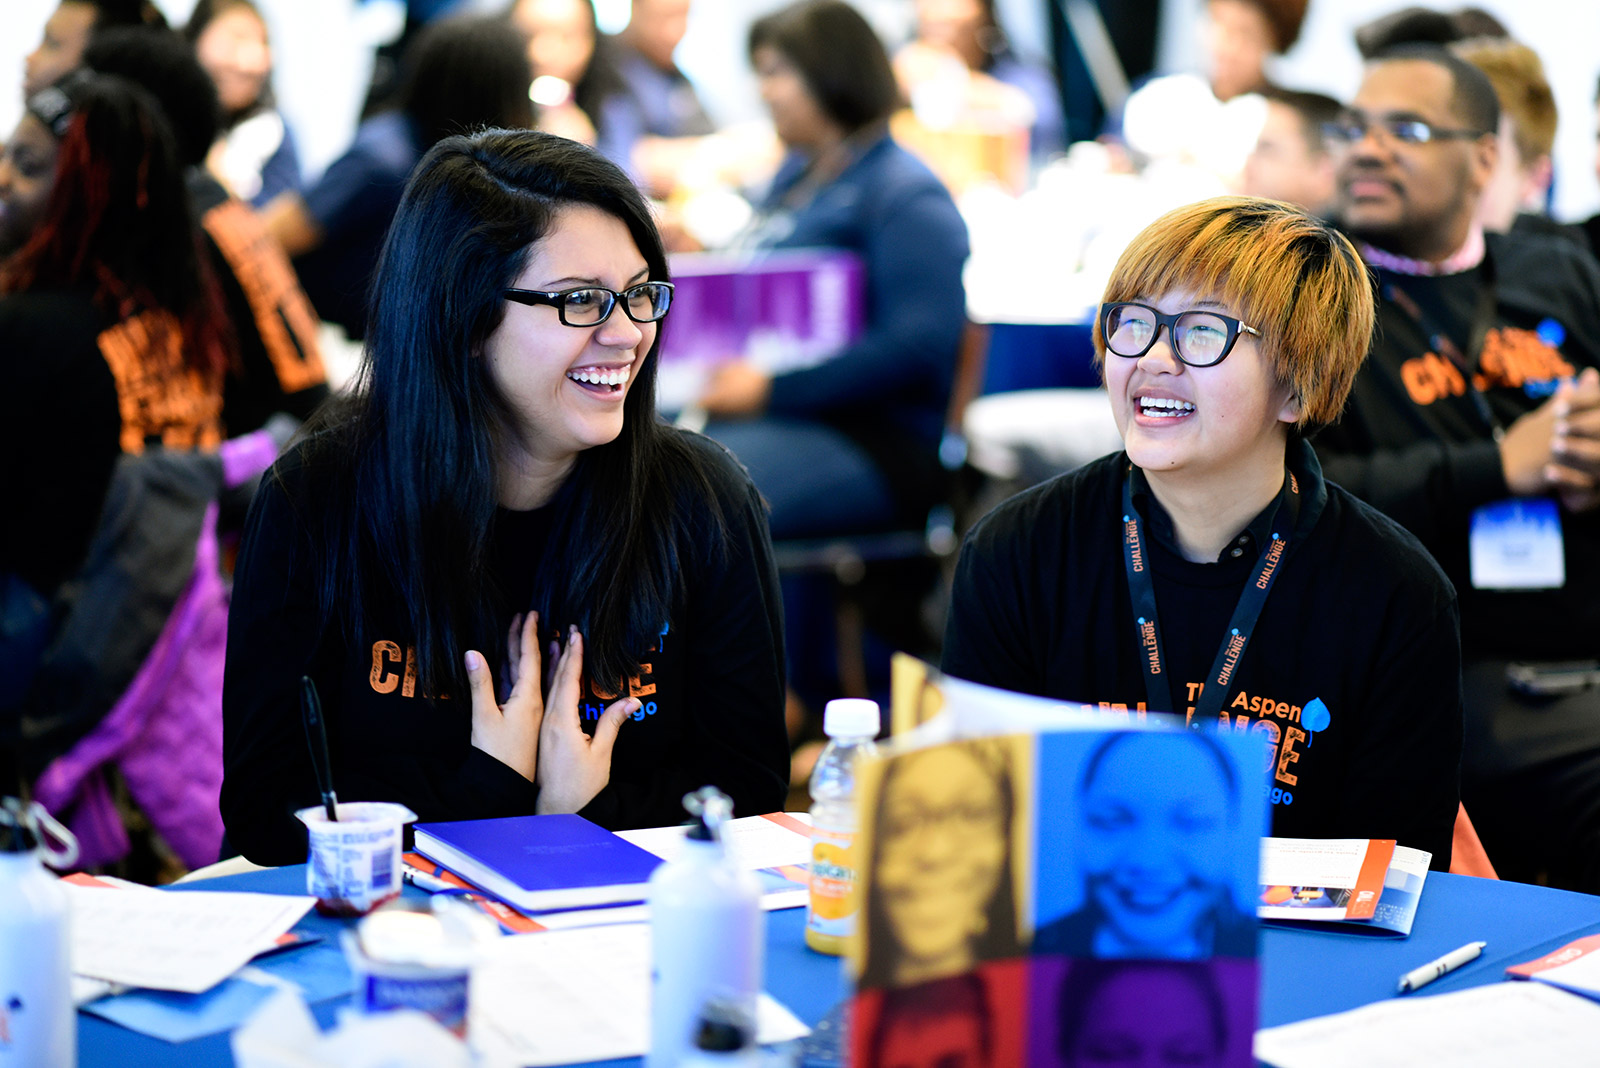 Students at the Aspen Challenge Opening Forum, Soldier Field, Chicago.